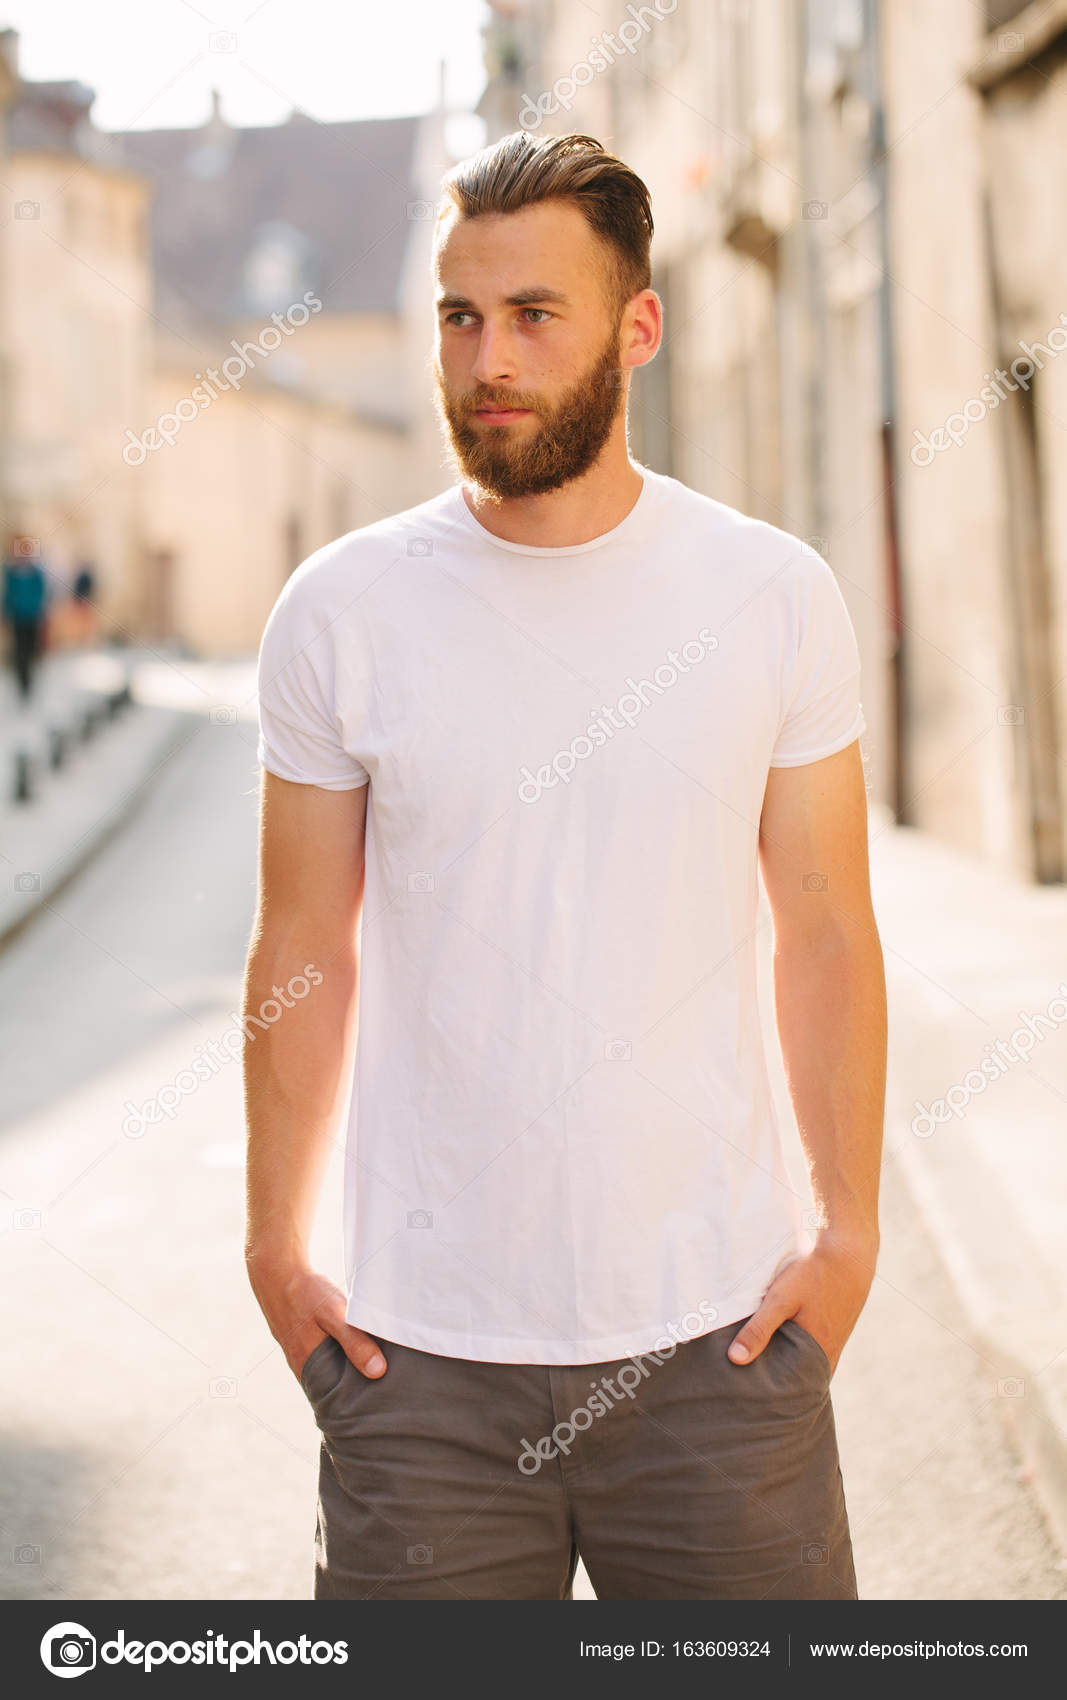 375f294cd0a5 Hipster handsome male model with beard wearing white blank t-shirt with  space for your logo or design in casual urban style — Photo by 4masik